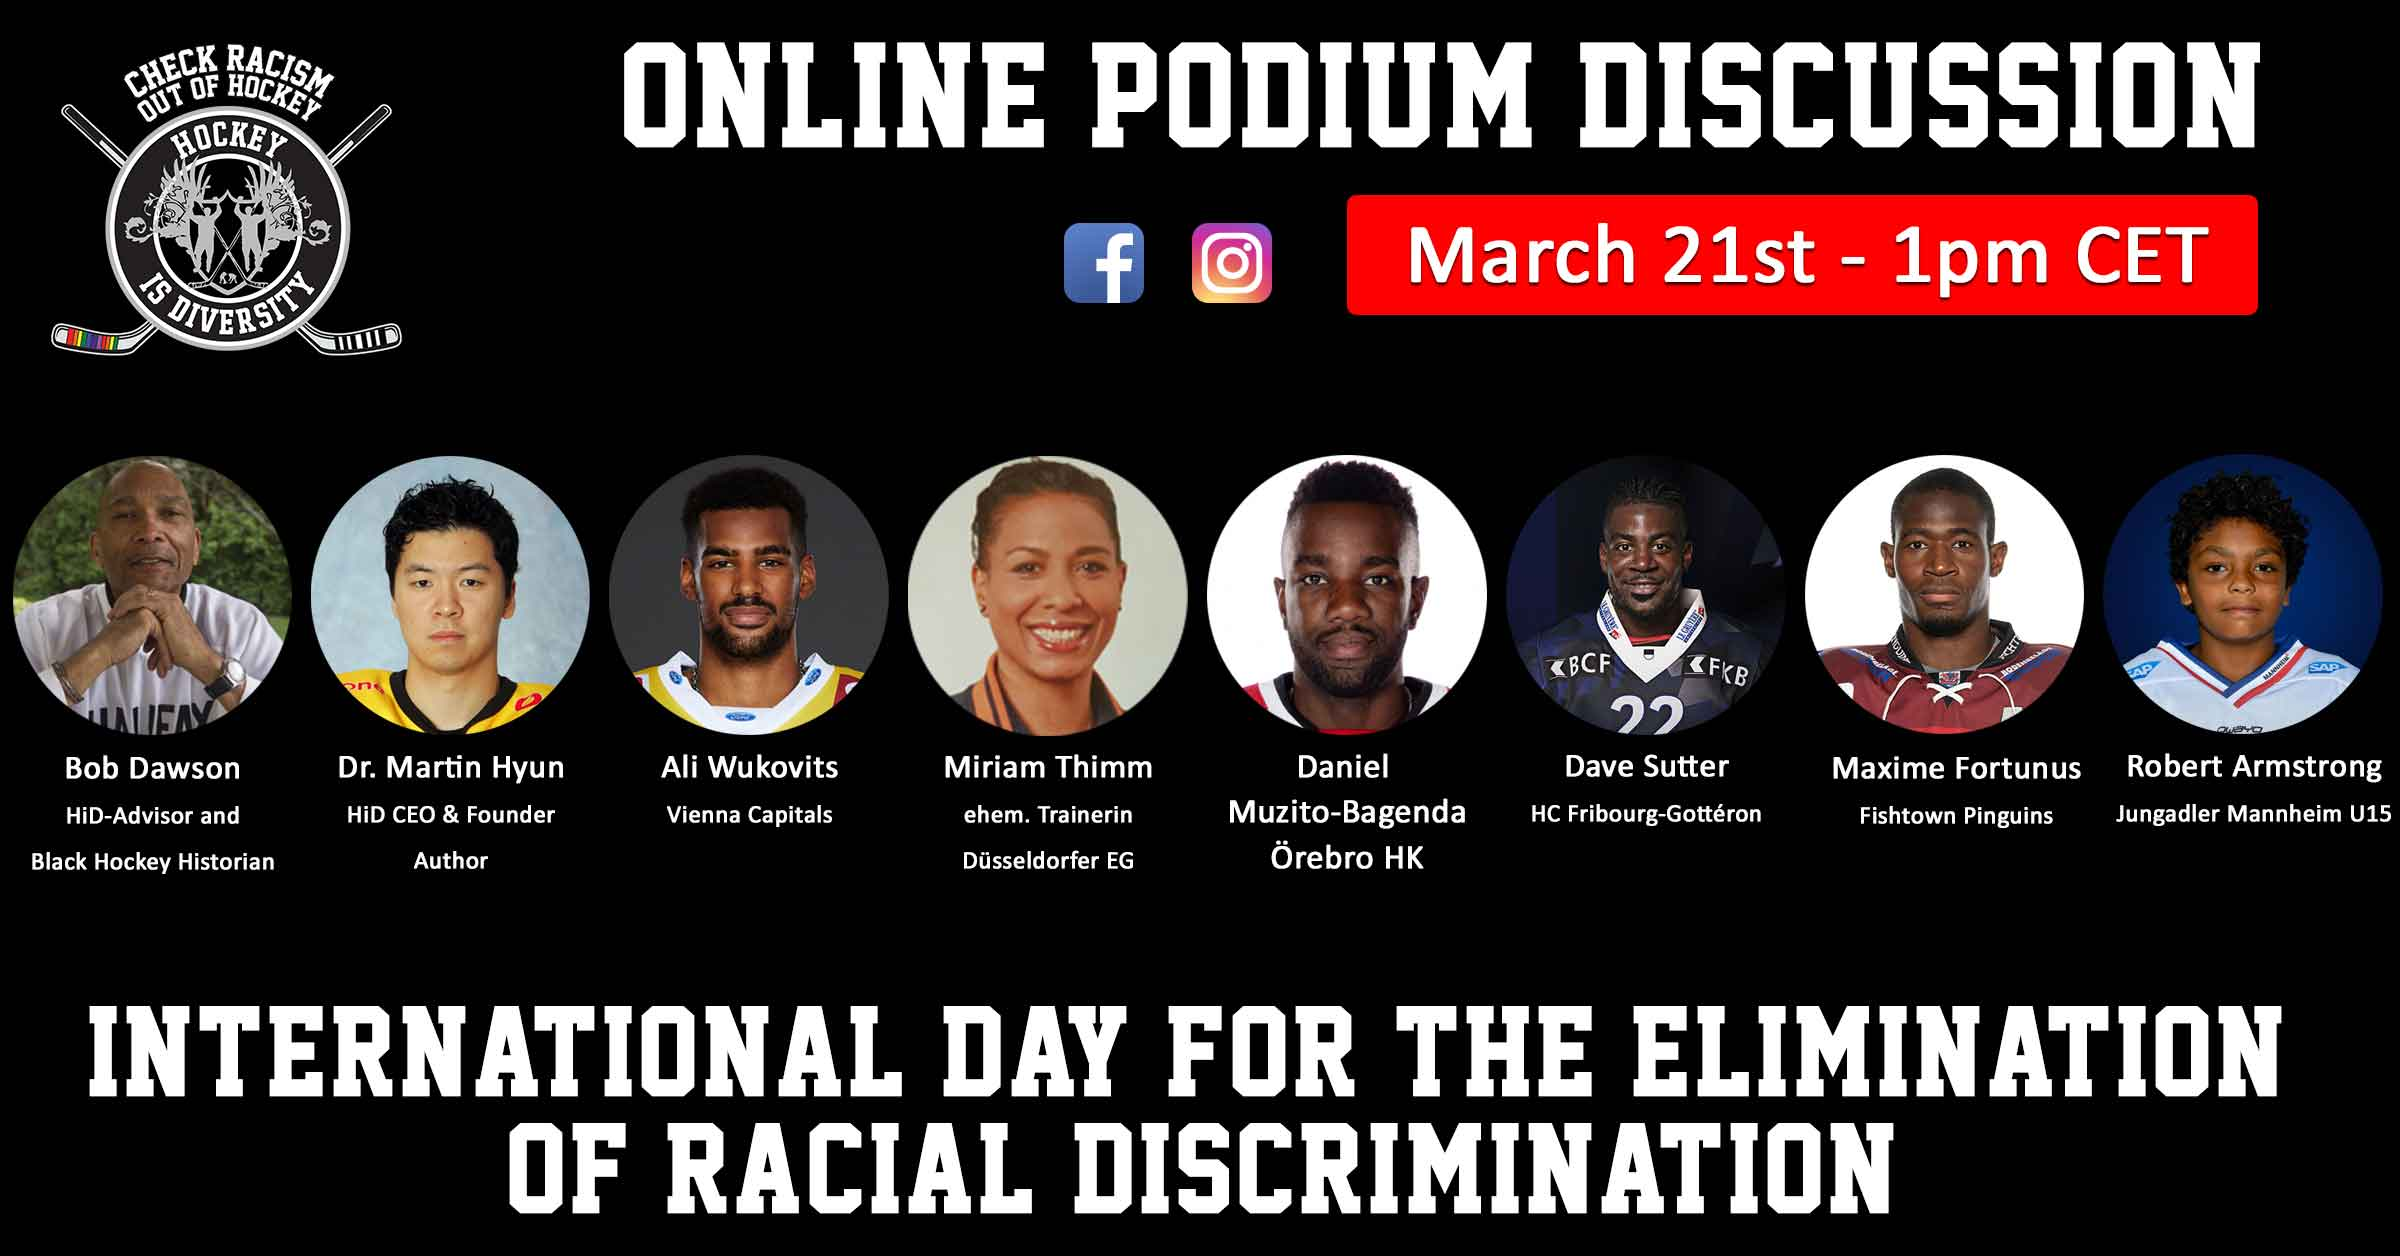 international day aganinst racism